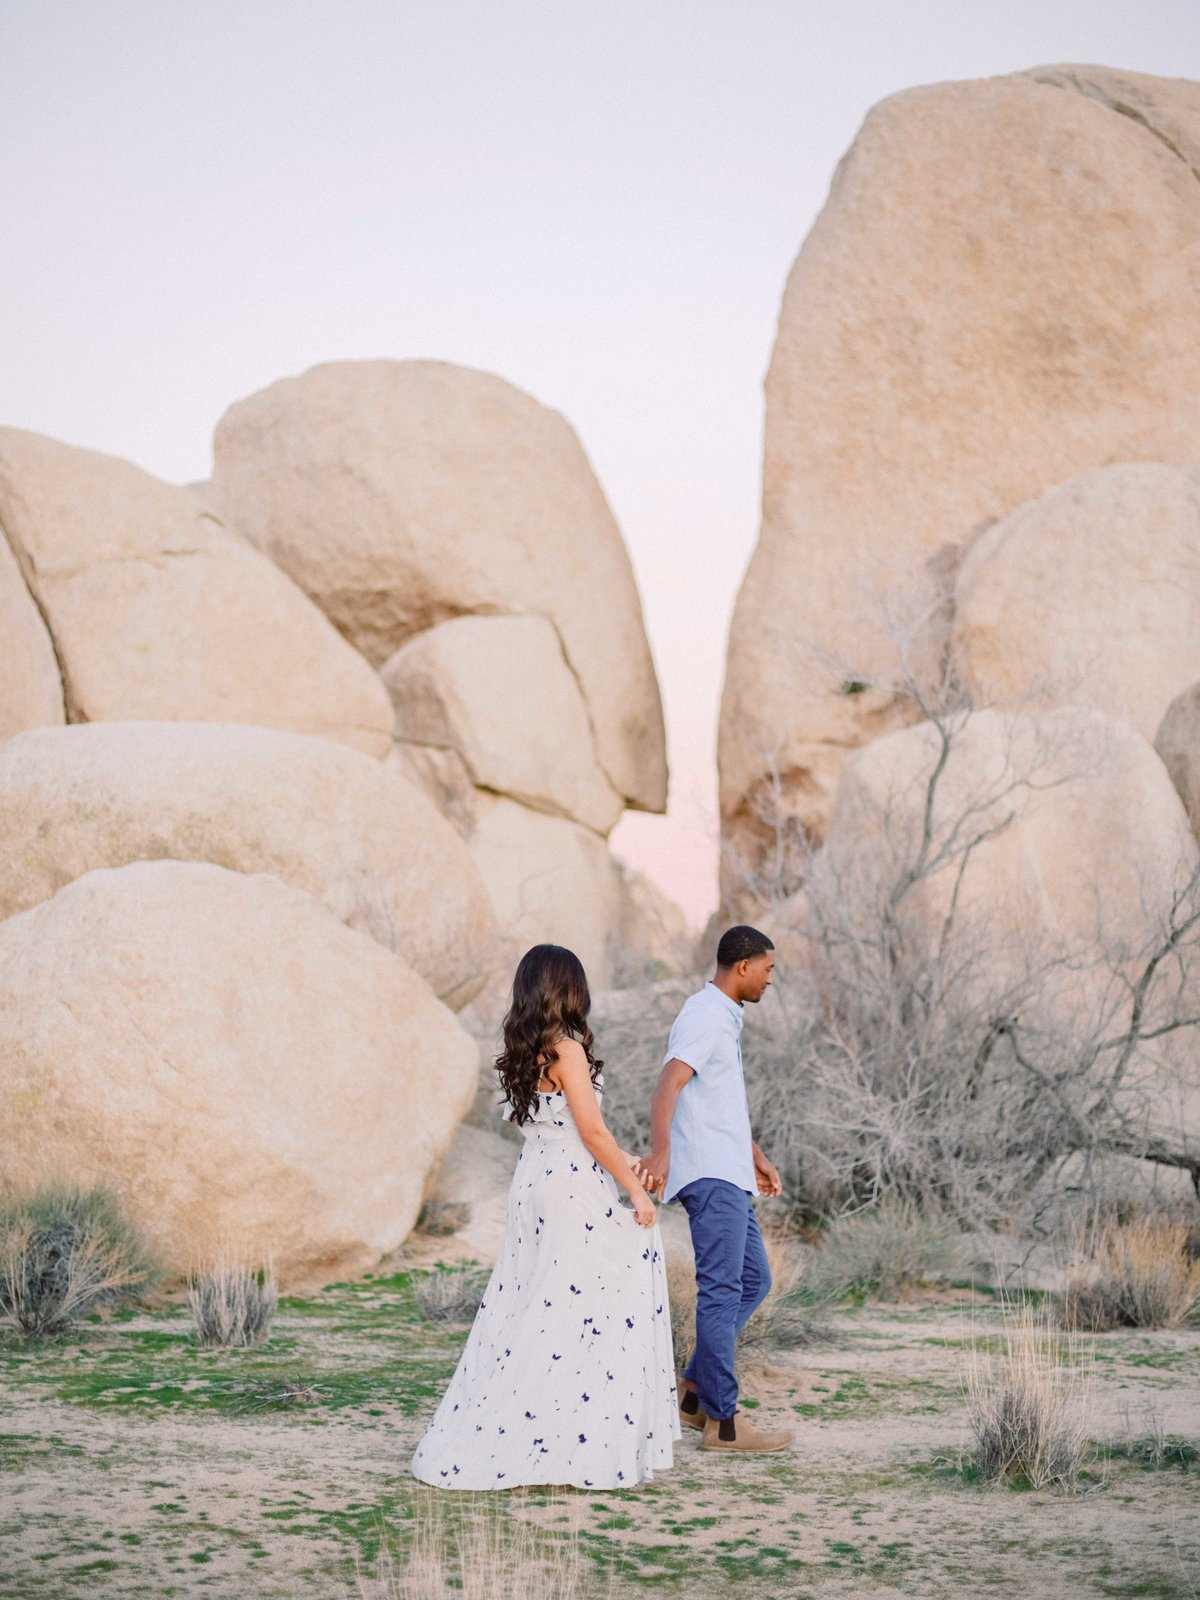 Babsie-Ly-Photography-Joshua-Tree-Engagement-Photography-Fine-Art-Film-MarinaEvan-010